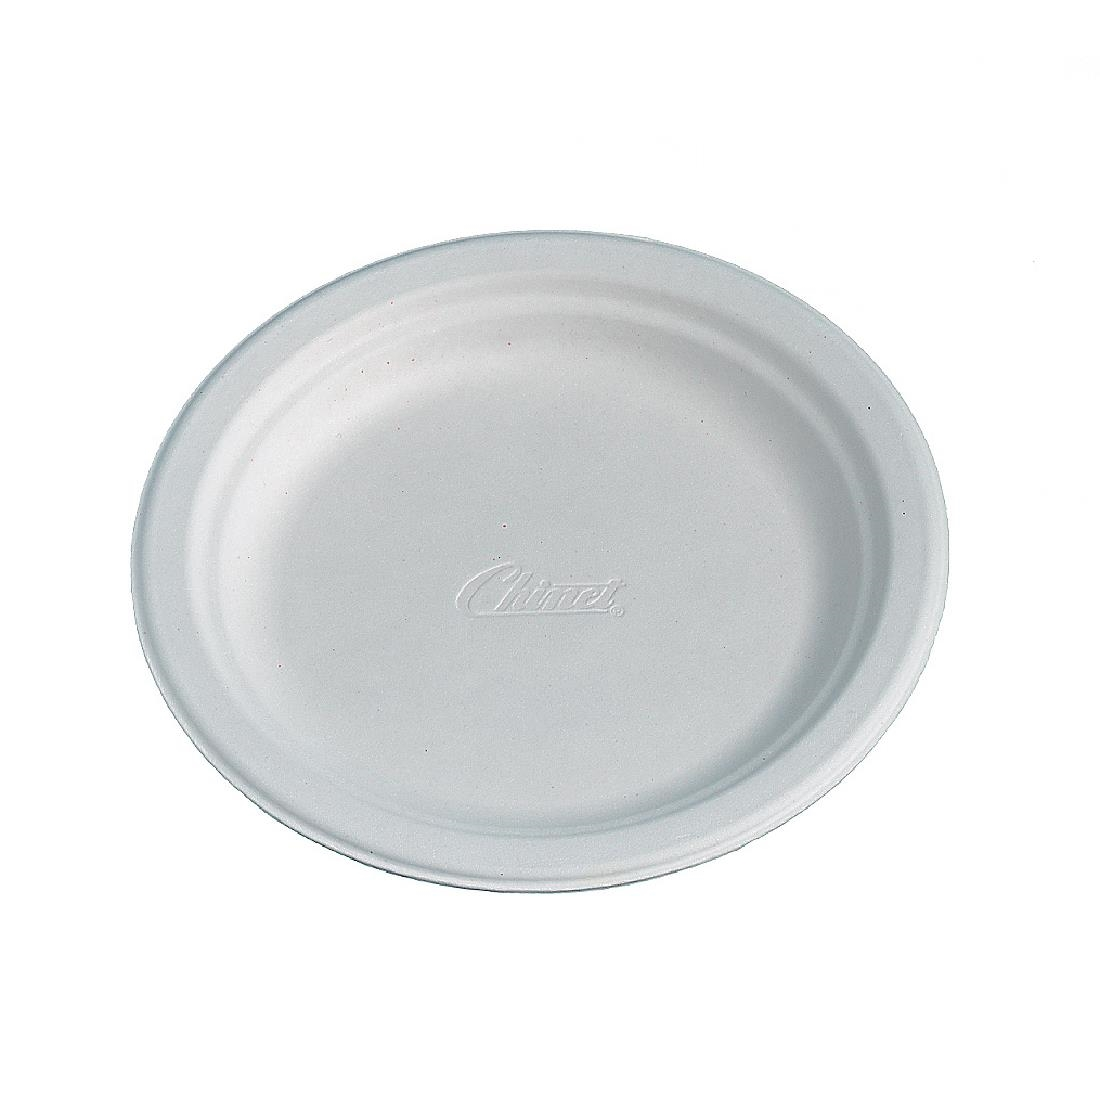 Image of Huhtamaki Compostable Moulded Fibre Chinet Plates 170mm (Pack of 175) Pack of 175